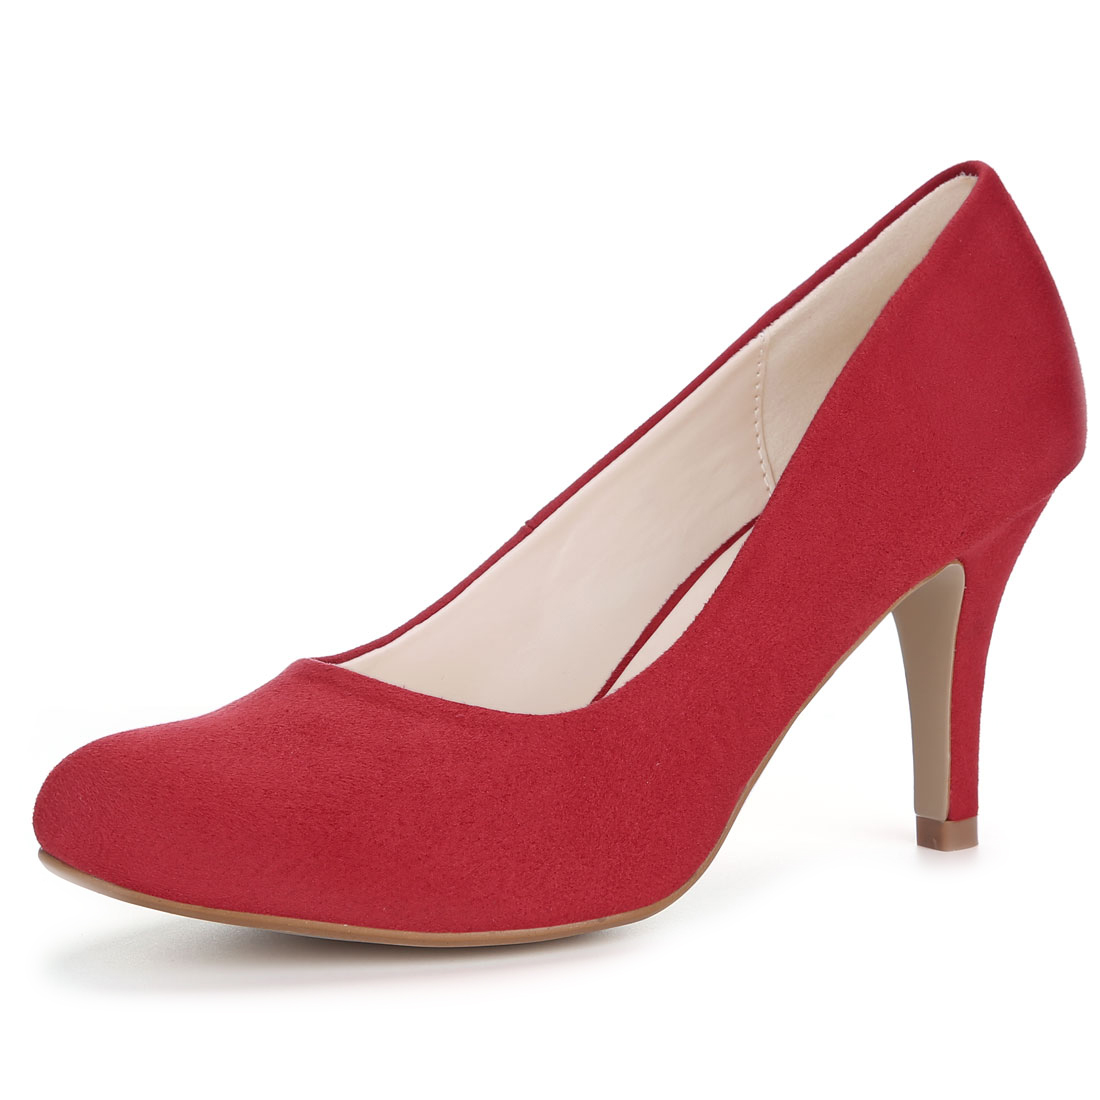 Women Rounded Toe Stiletto High Heel Classic Pumps Red US 9